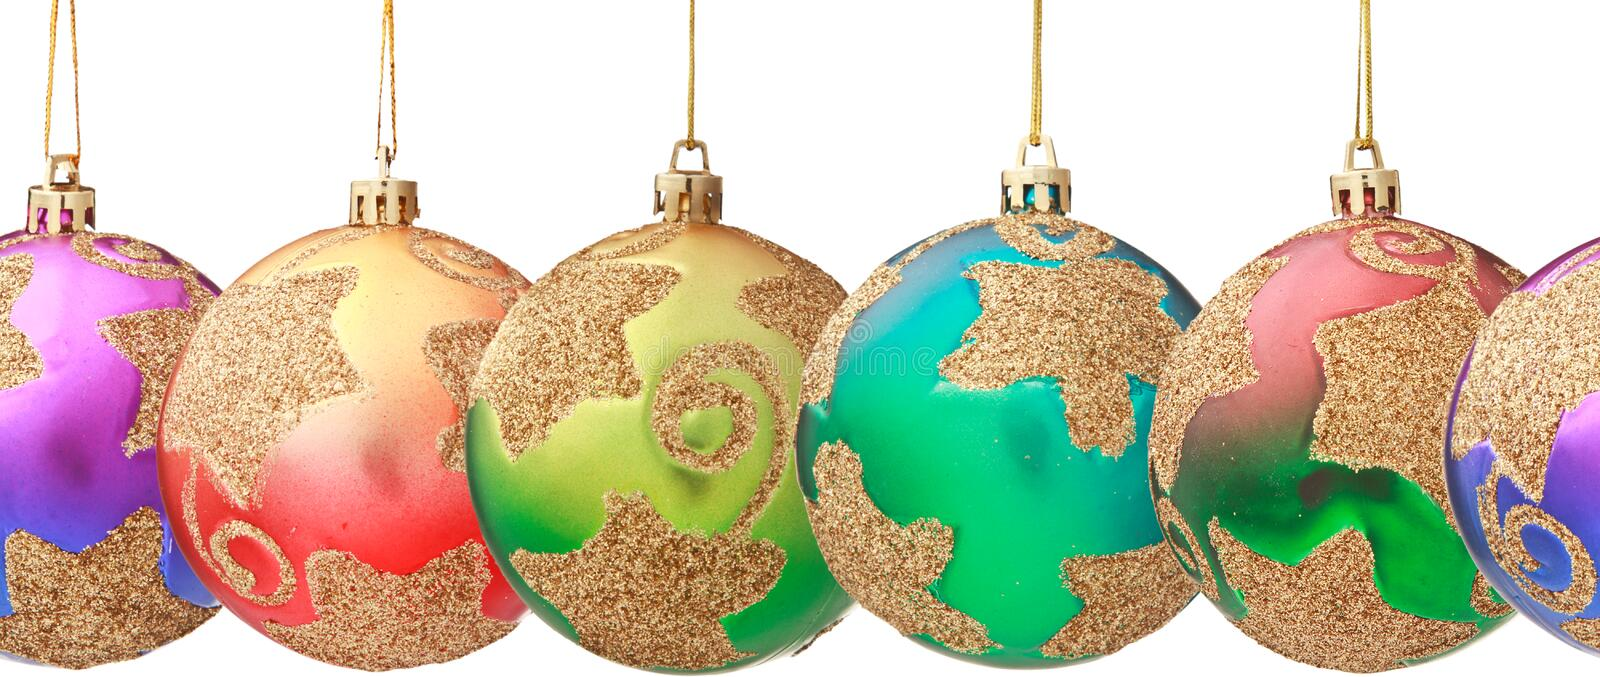 Several hanging Christmas baubles isolated royalty free stock photo